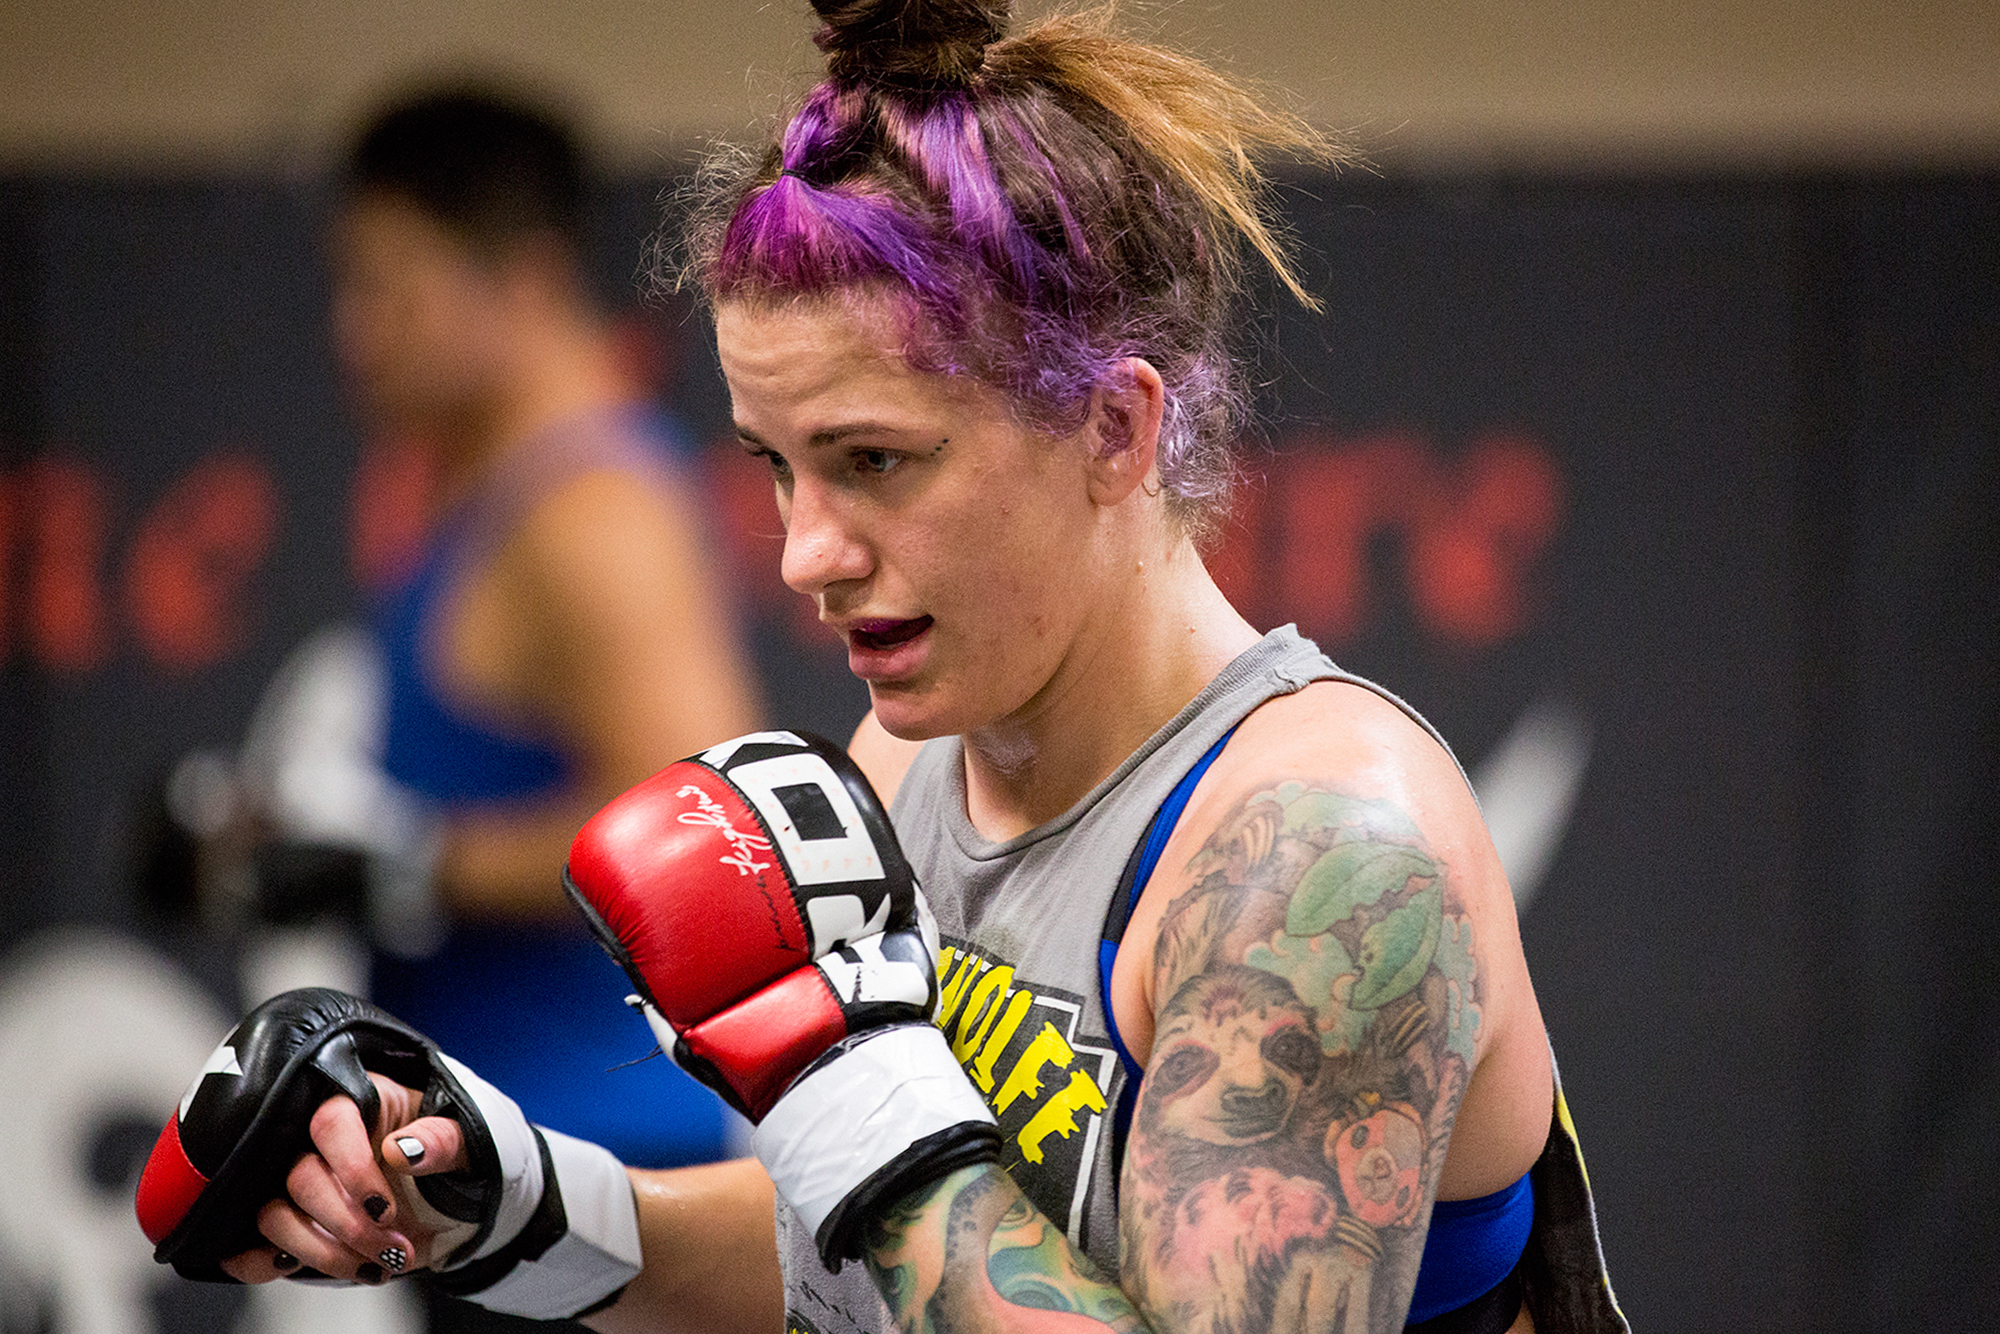 Mazany is one of 60 female fighters and 700 male fighters enrolled in a Cleveland Clinic study that's delving into how concussions might differ between women and men. (Bridget Bennett/For NPR)